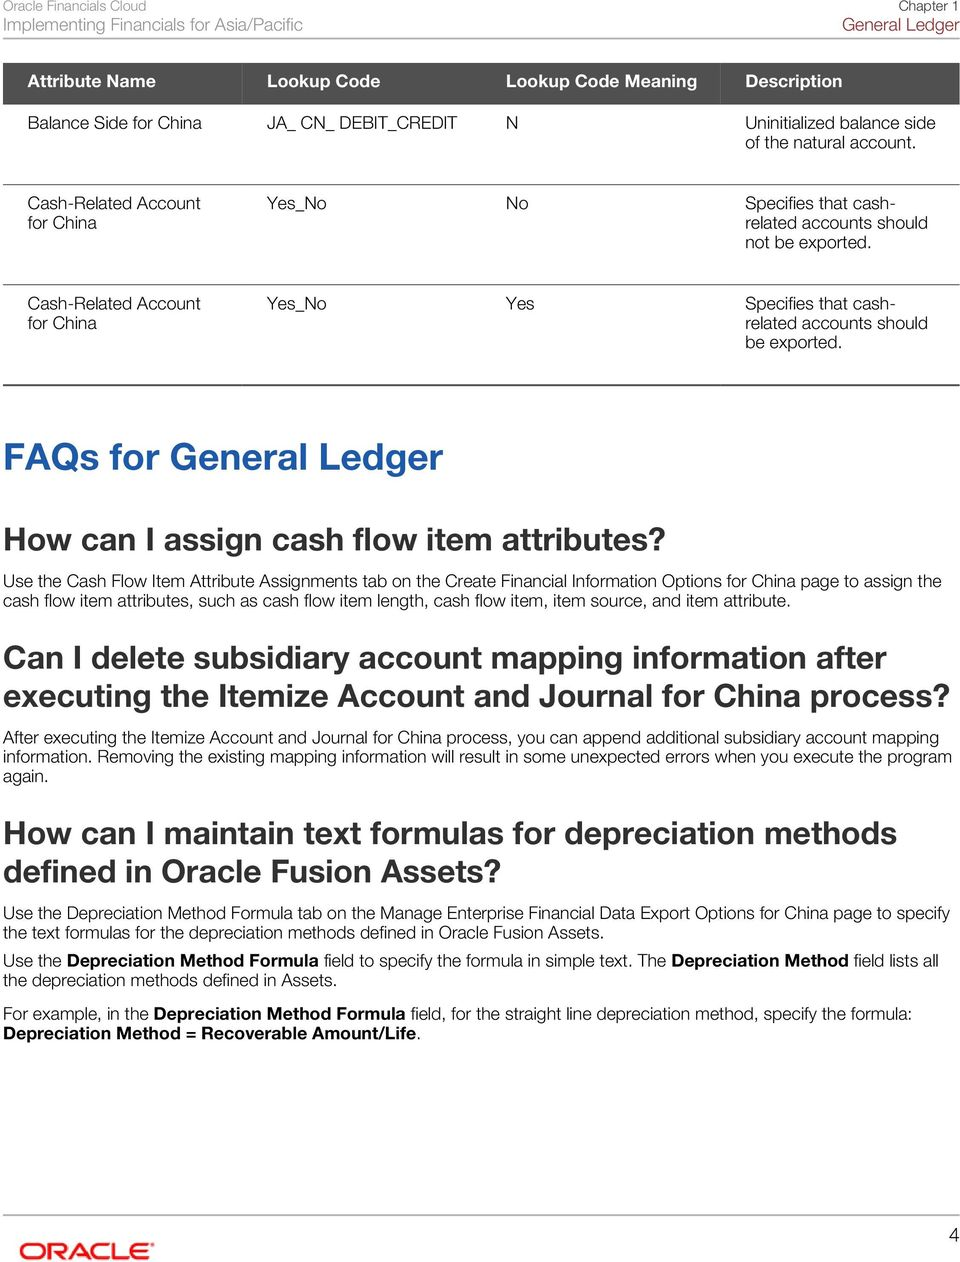 FAQs for General Ledger How can I assign cash flow item attributes?